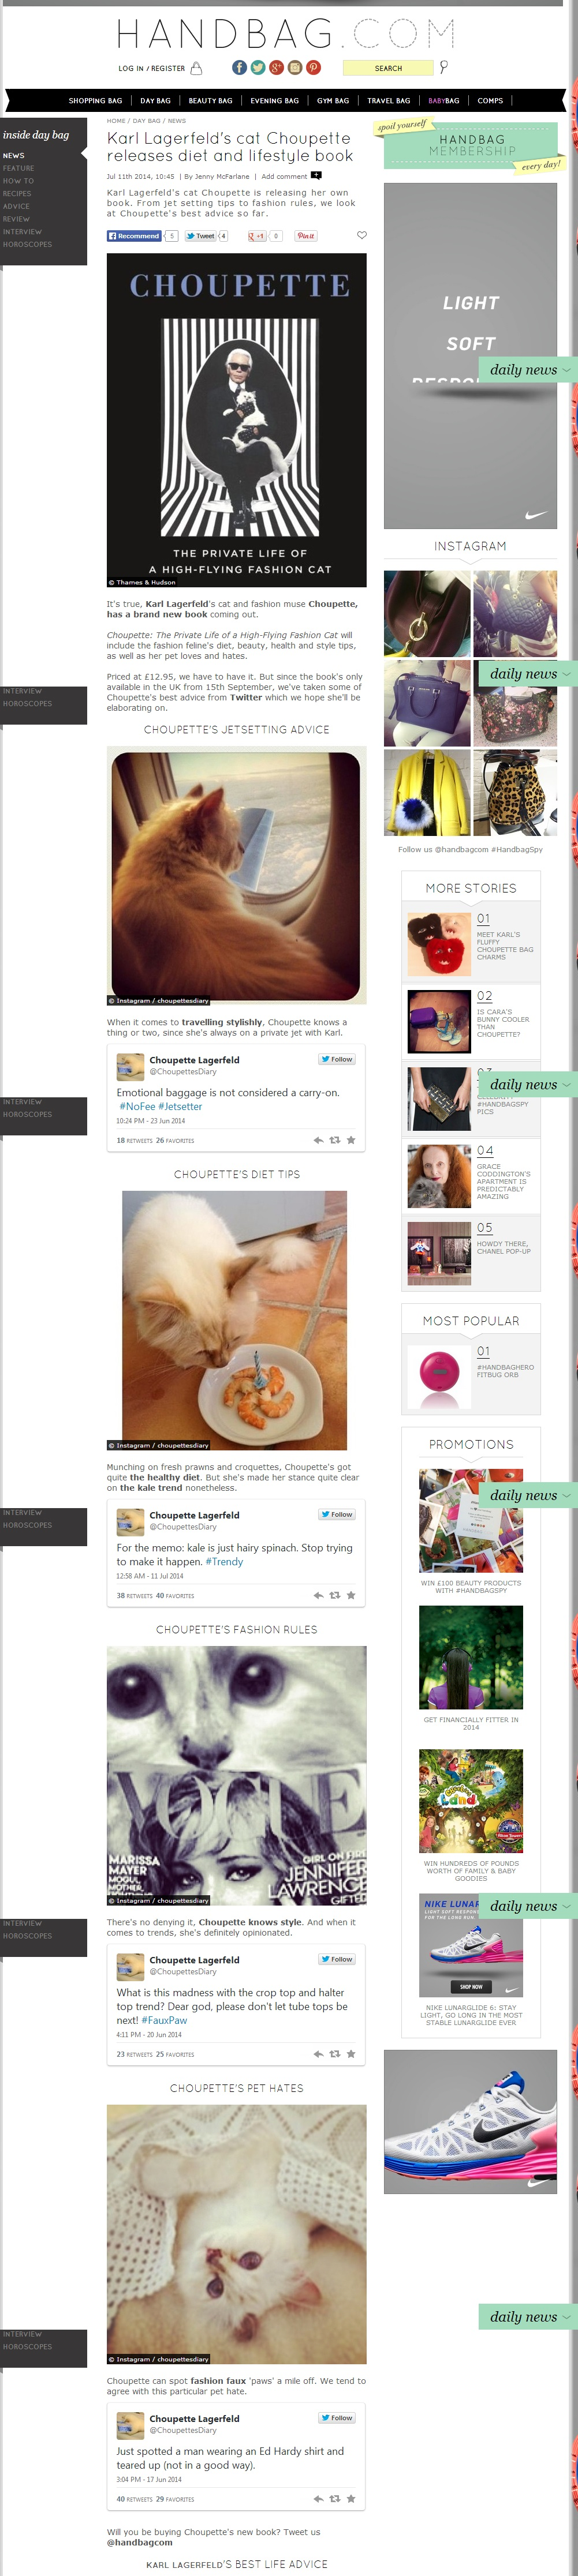 screencapture-www-handbag-com-day-bag-news-a583532-karl-lagerfelds-cat-choupette-releases-diet-and-lifestyle-book-html